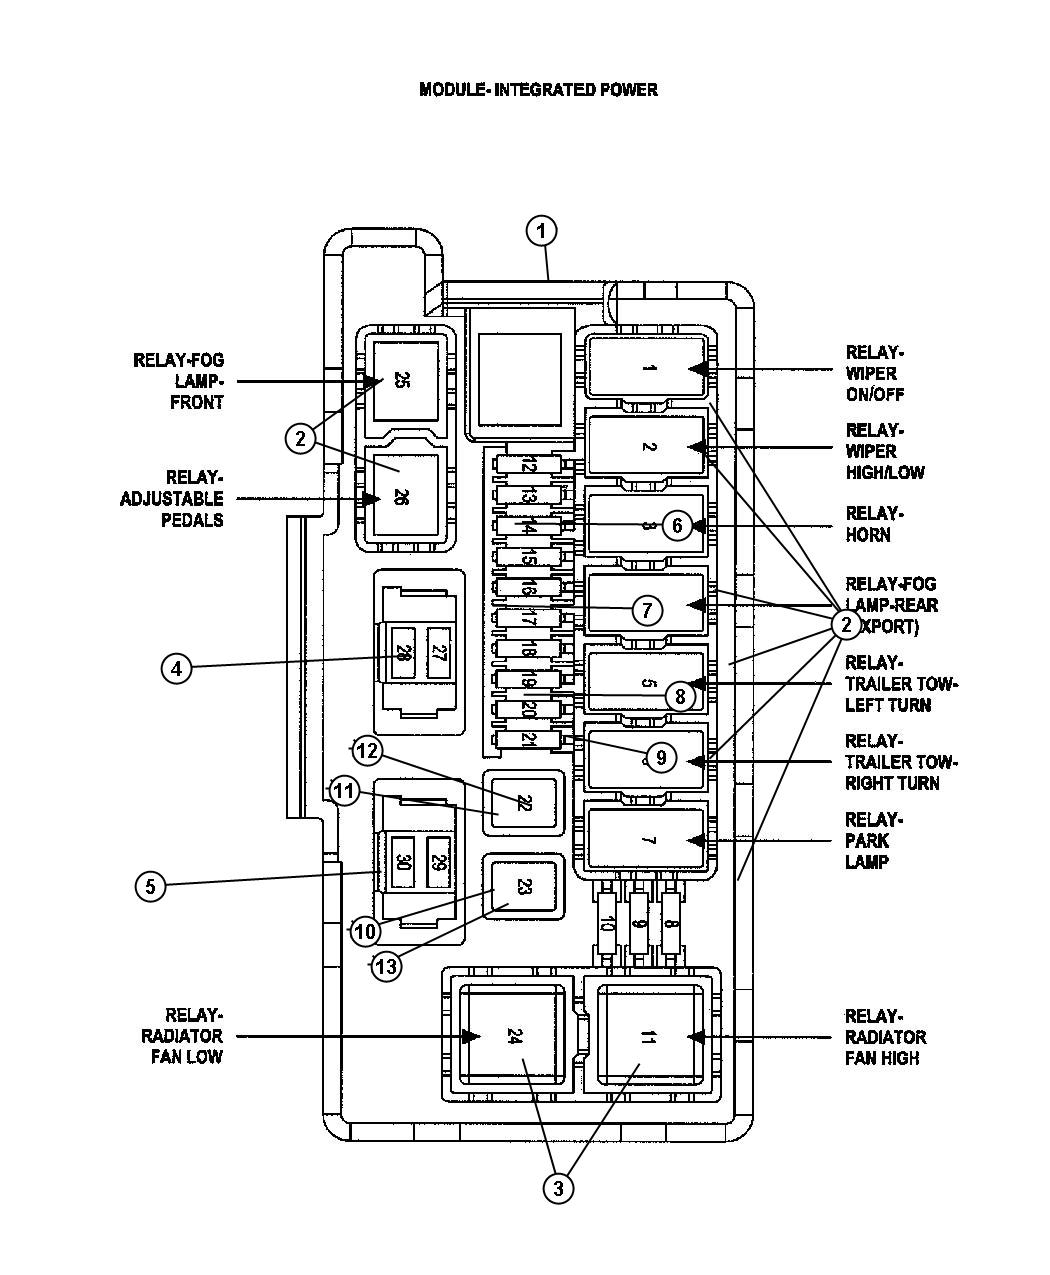 i2163577 jeep stereo wiring diagram jeep free wiring diagrams 2006 jeep commander trailer wiring diagram at mifinder.co